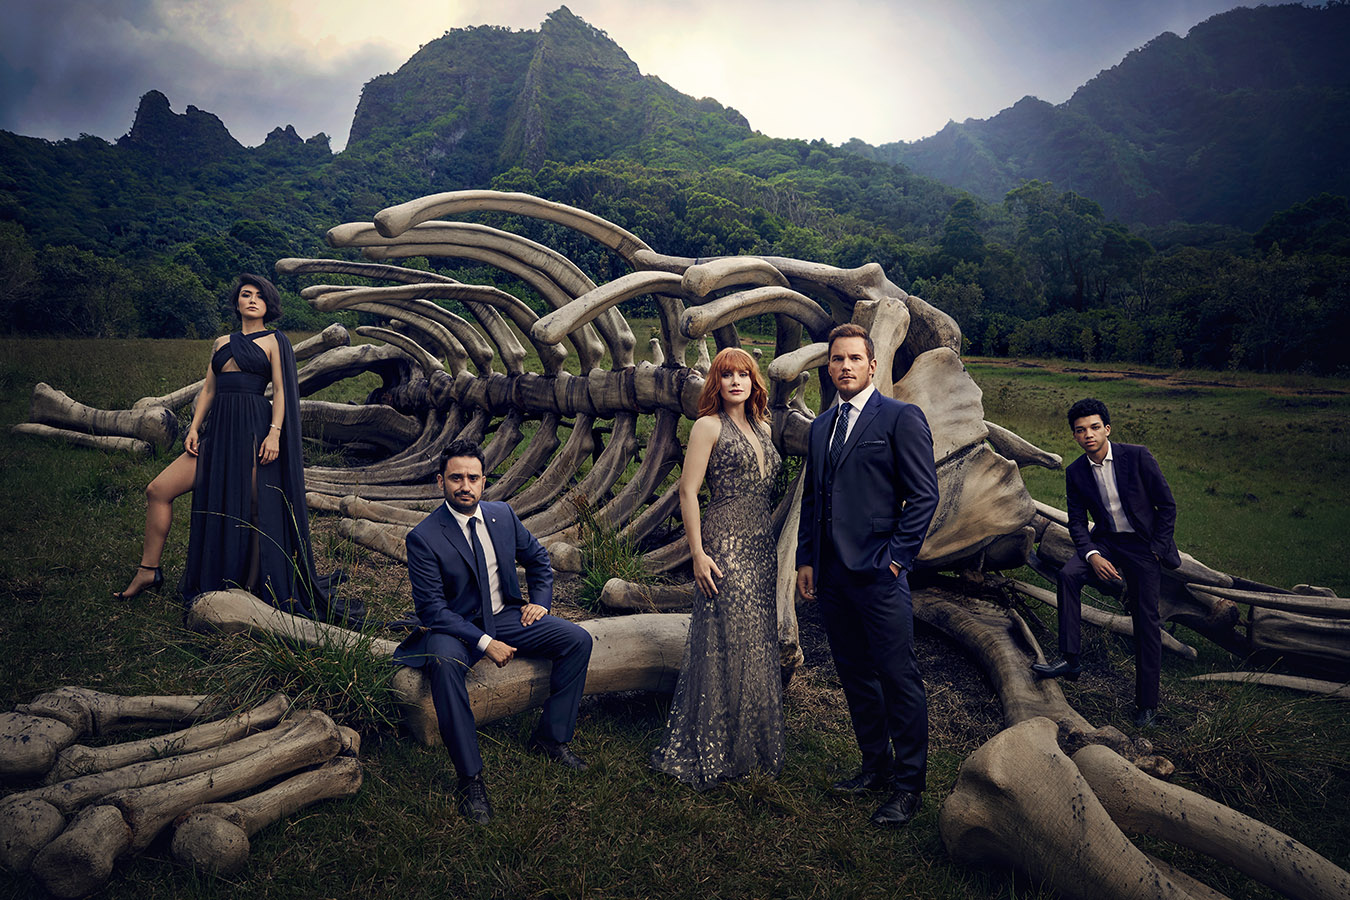 Gall-2910-Streiber-Group-JurassicWorld-NBC-THPP